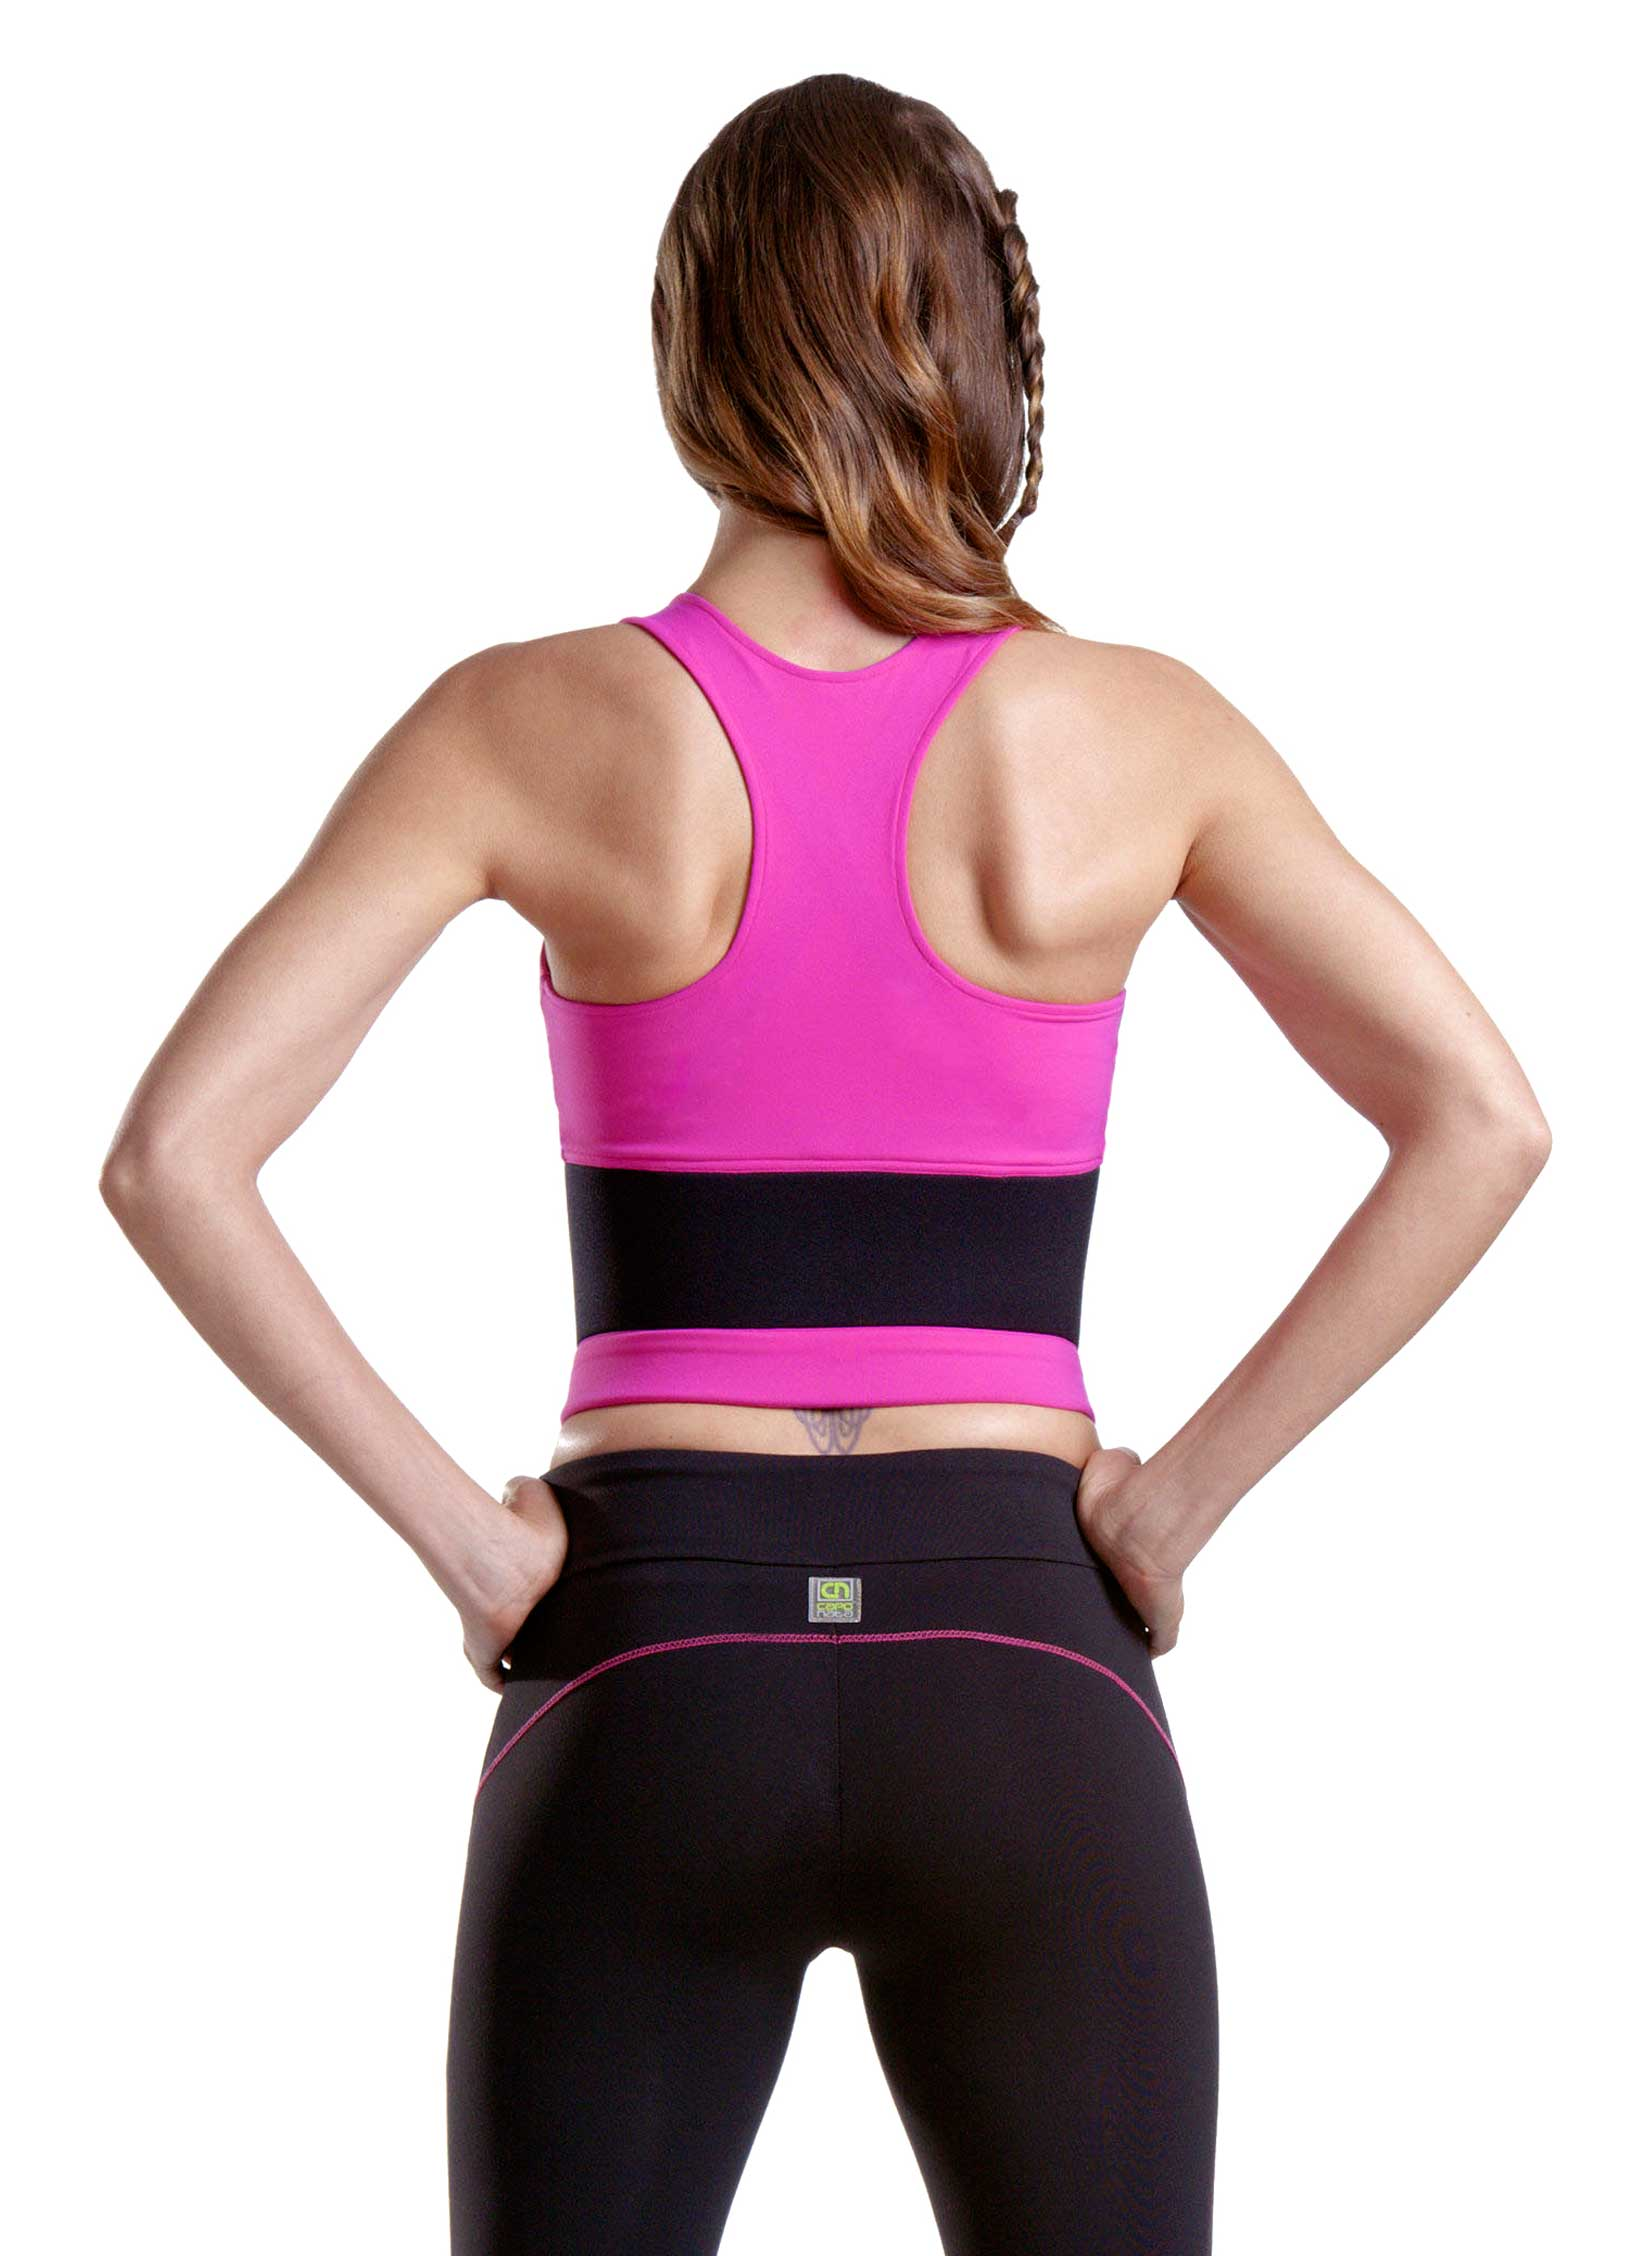 Lean Body Sports Bra In Pink Rear